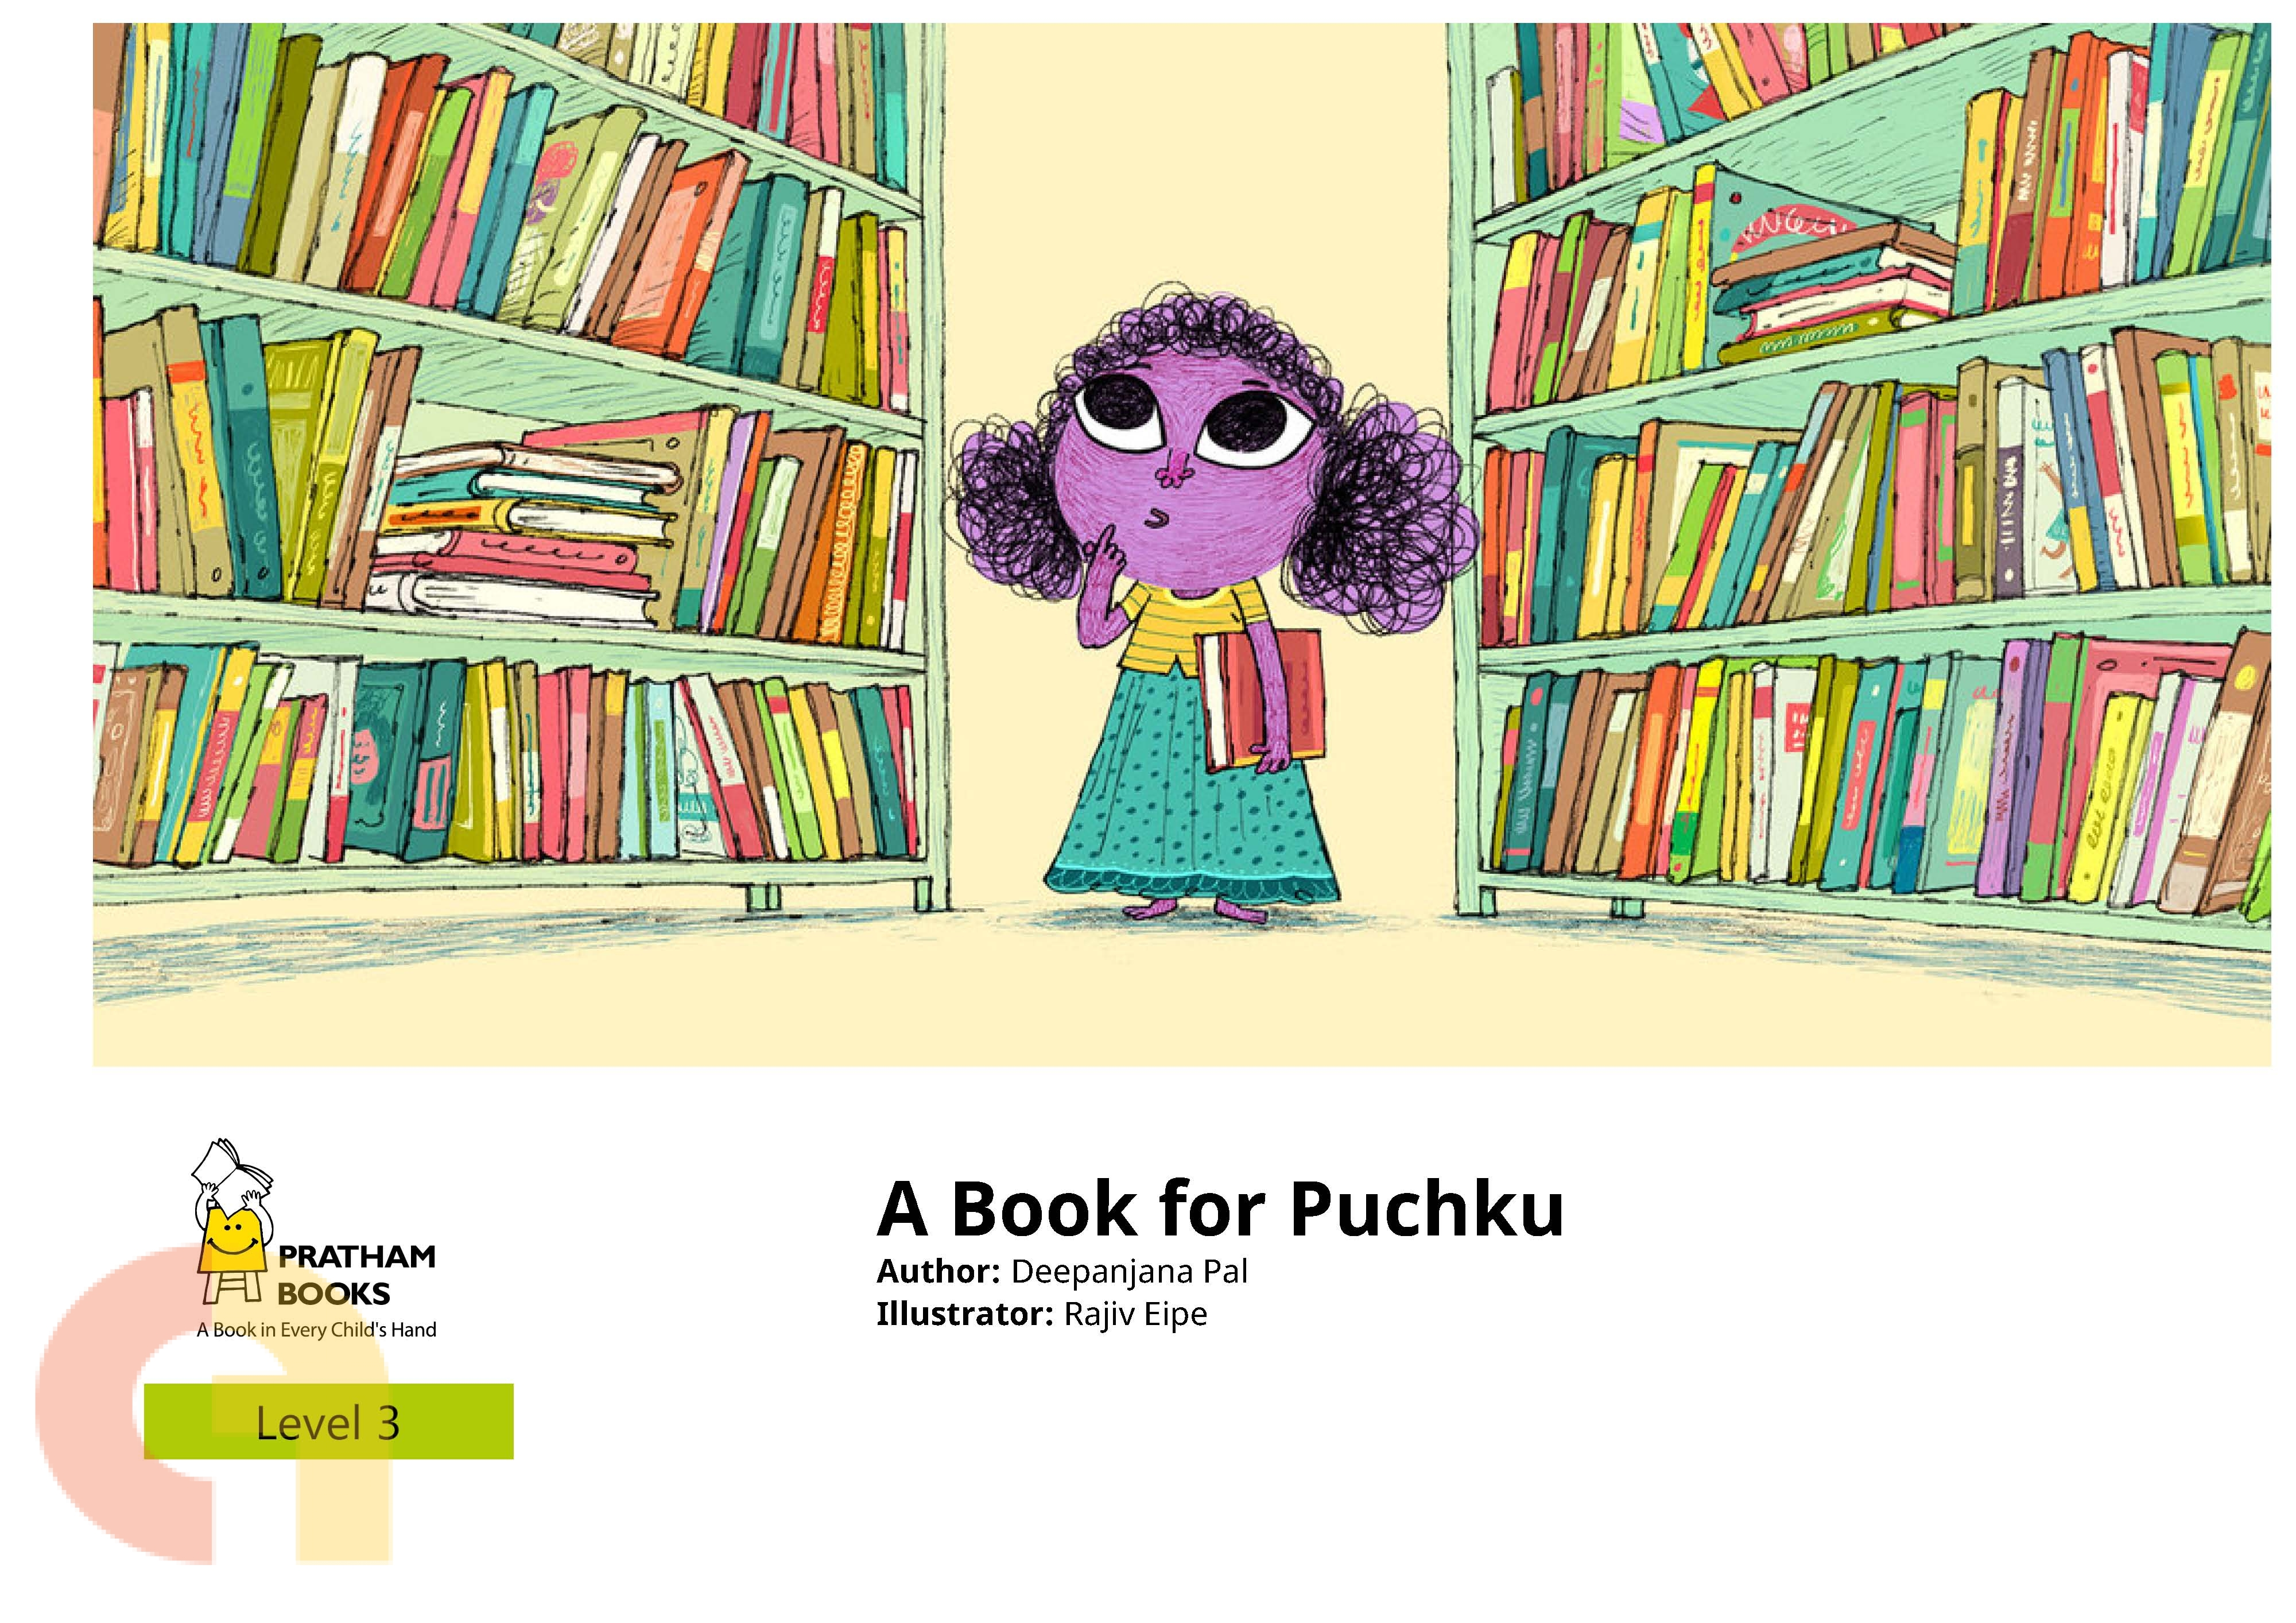 A Book for Puchku